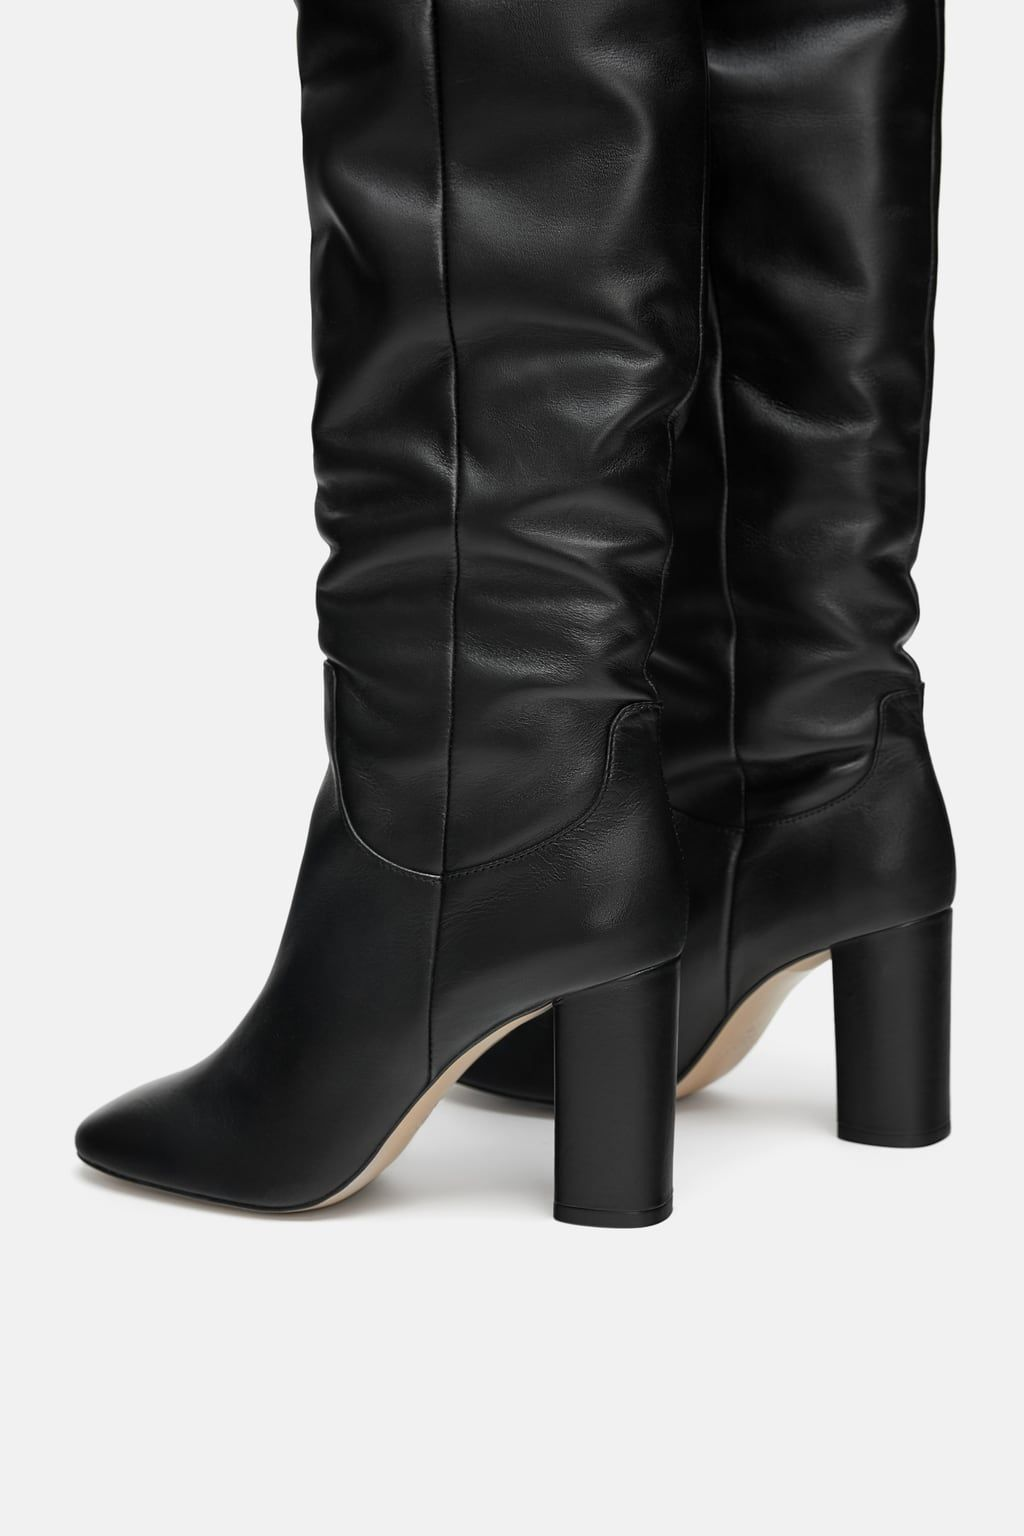 9b77041e2e5 Image 8 of HIGH HEELED LEATHER BOOTS from Zara